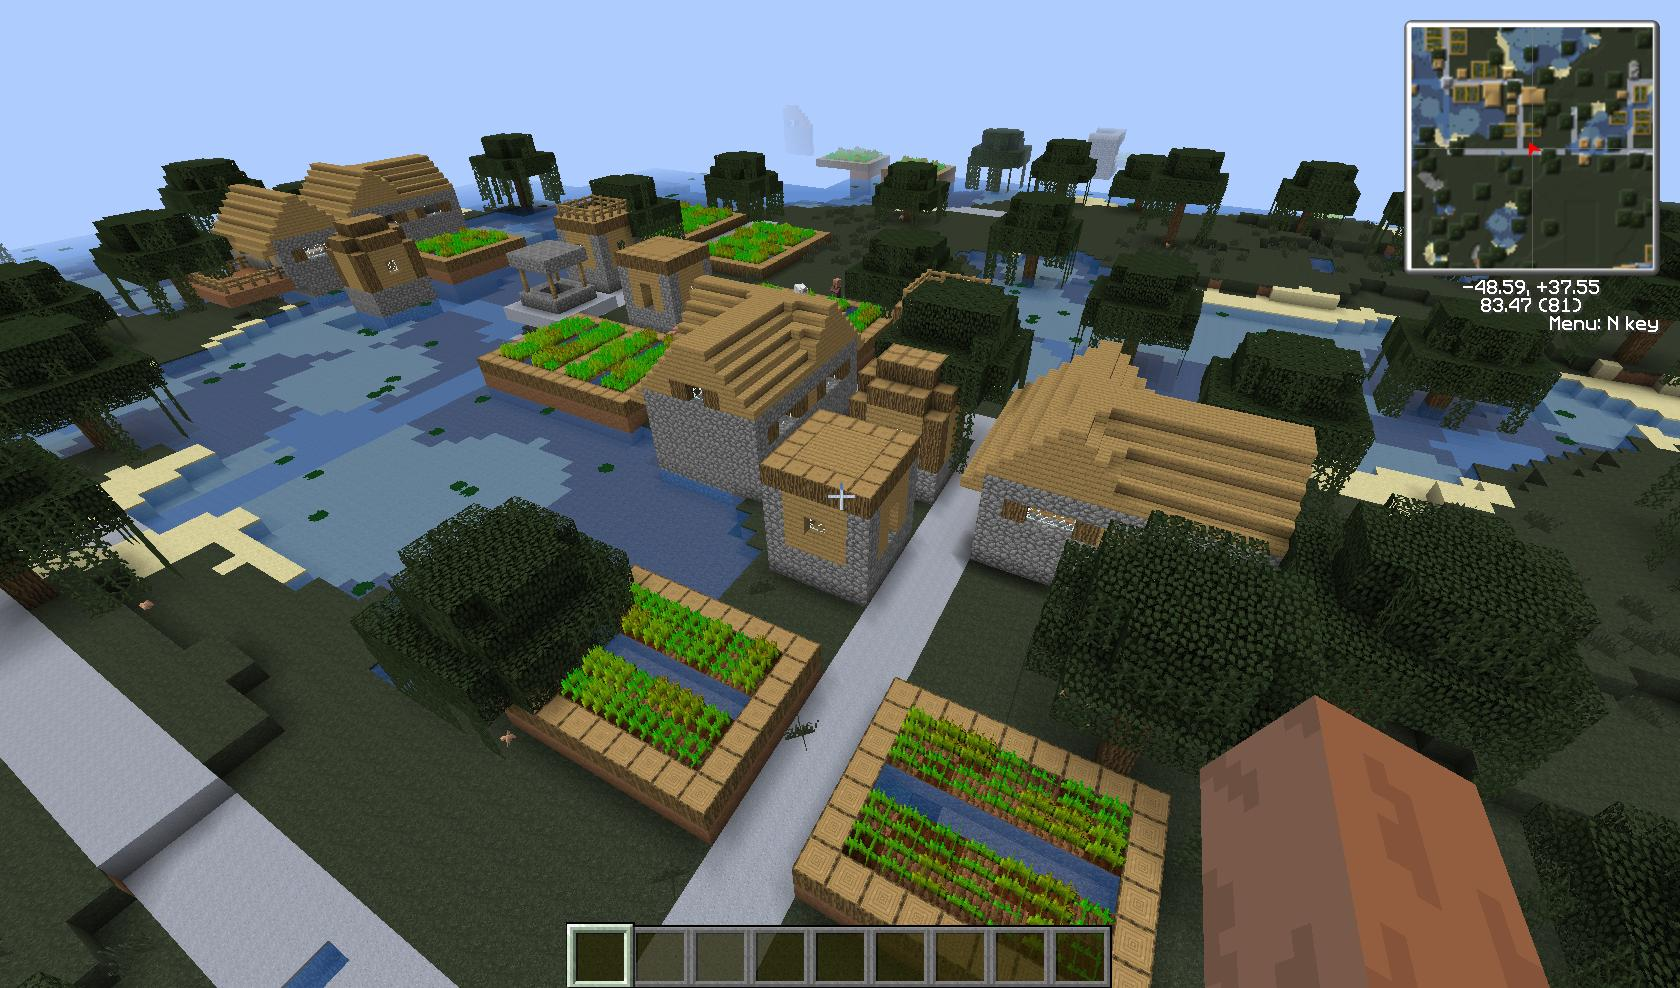 http://minecraft-forum.net/wp-content/uploads/2013/03/77c4b__More-Village-Biomes-Mod-2.jpg